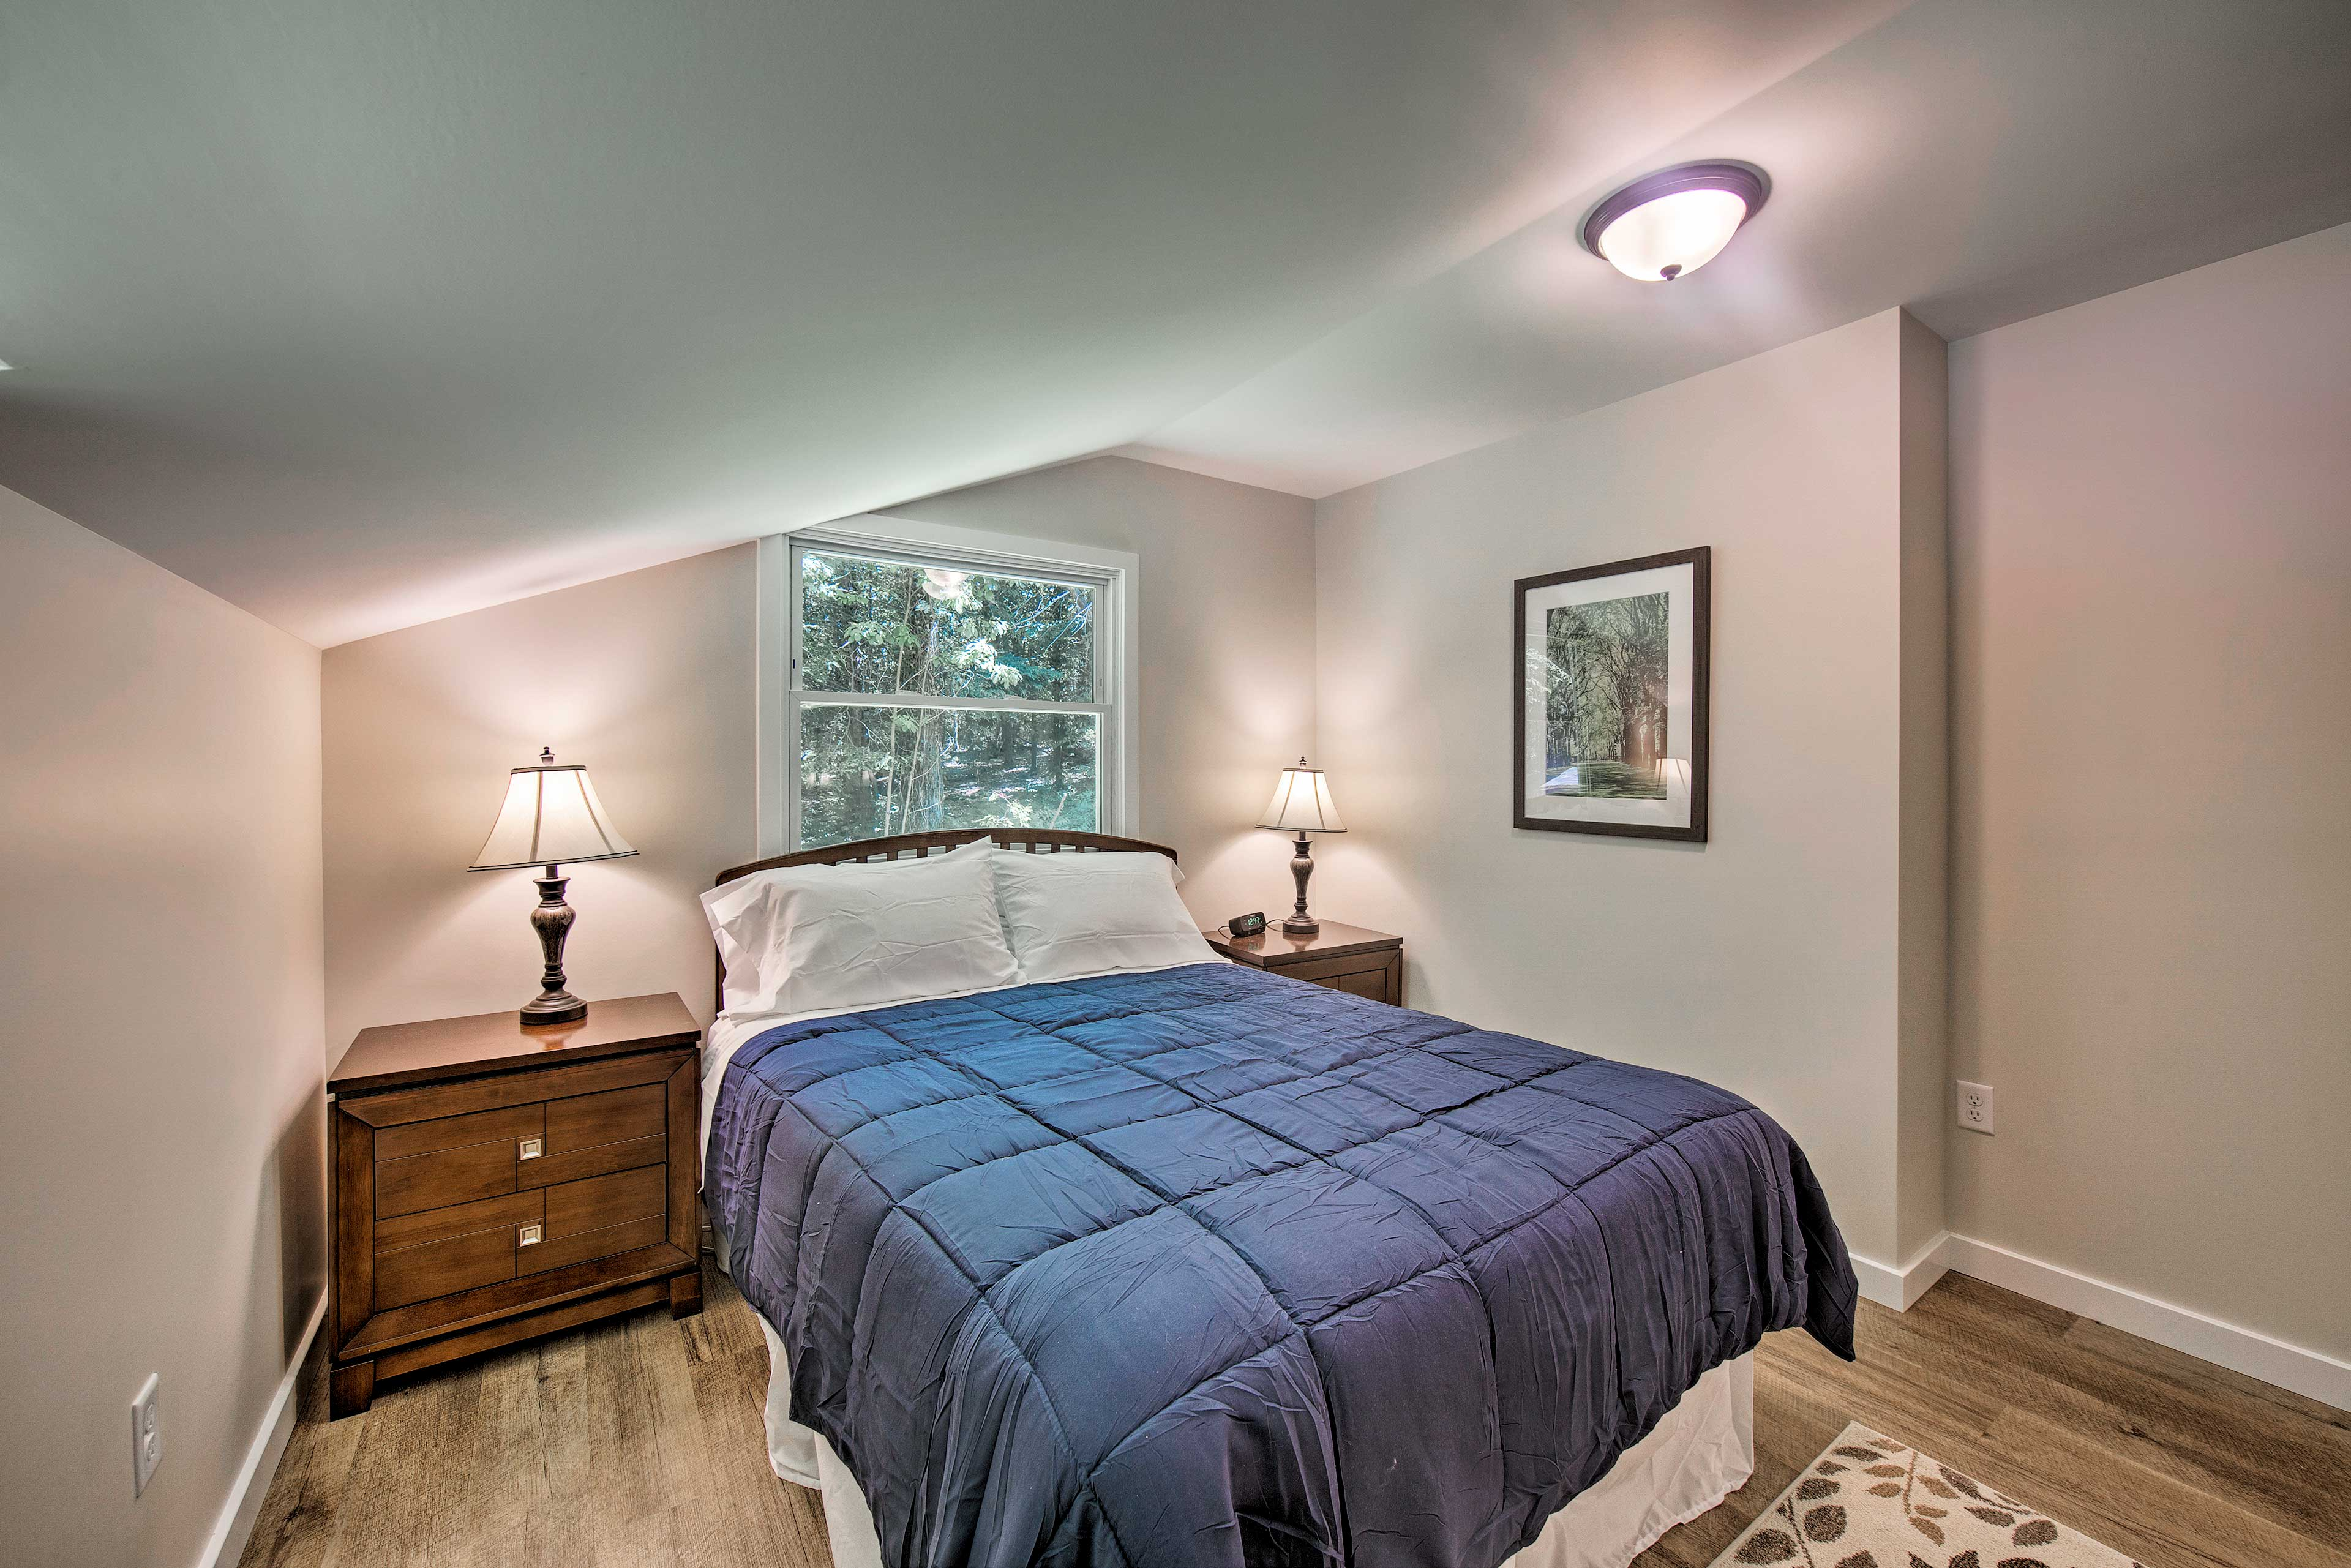 This room is outfitted with a queen bed as well.